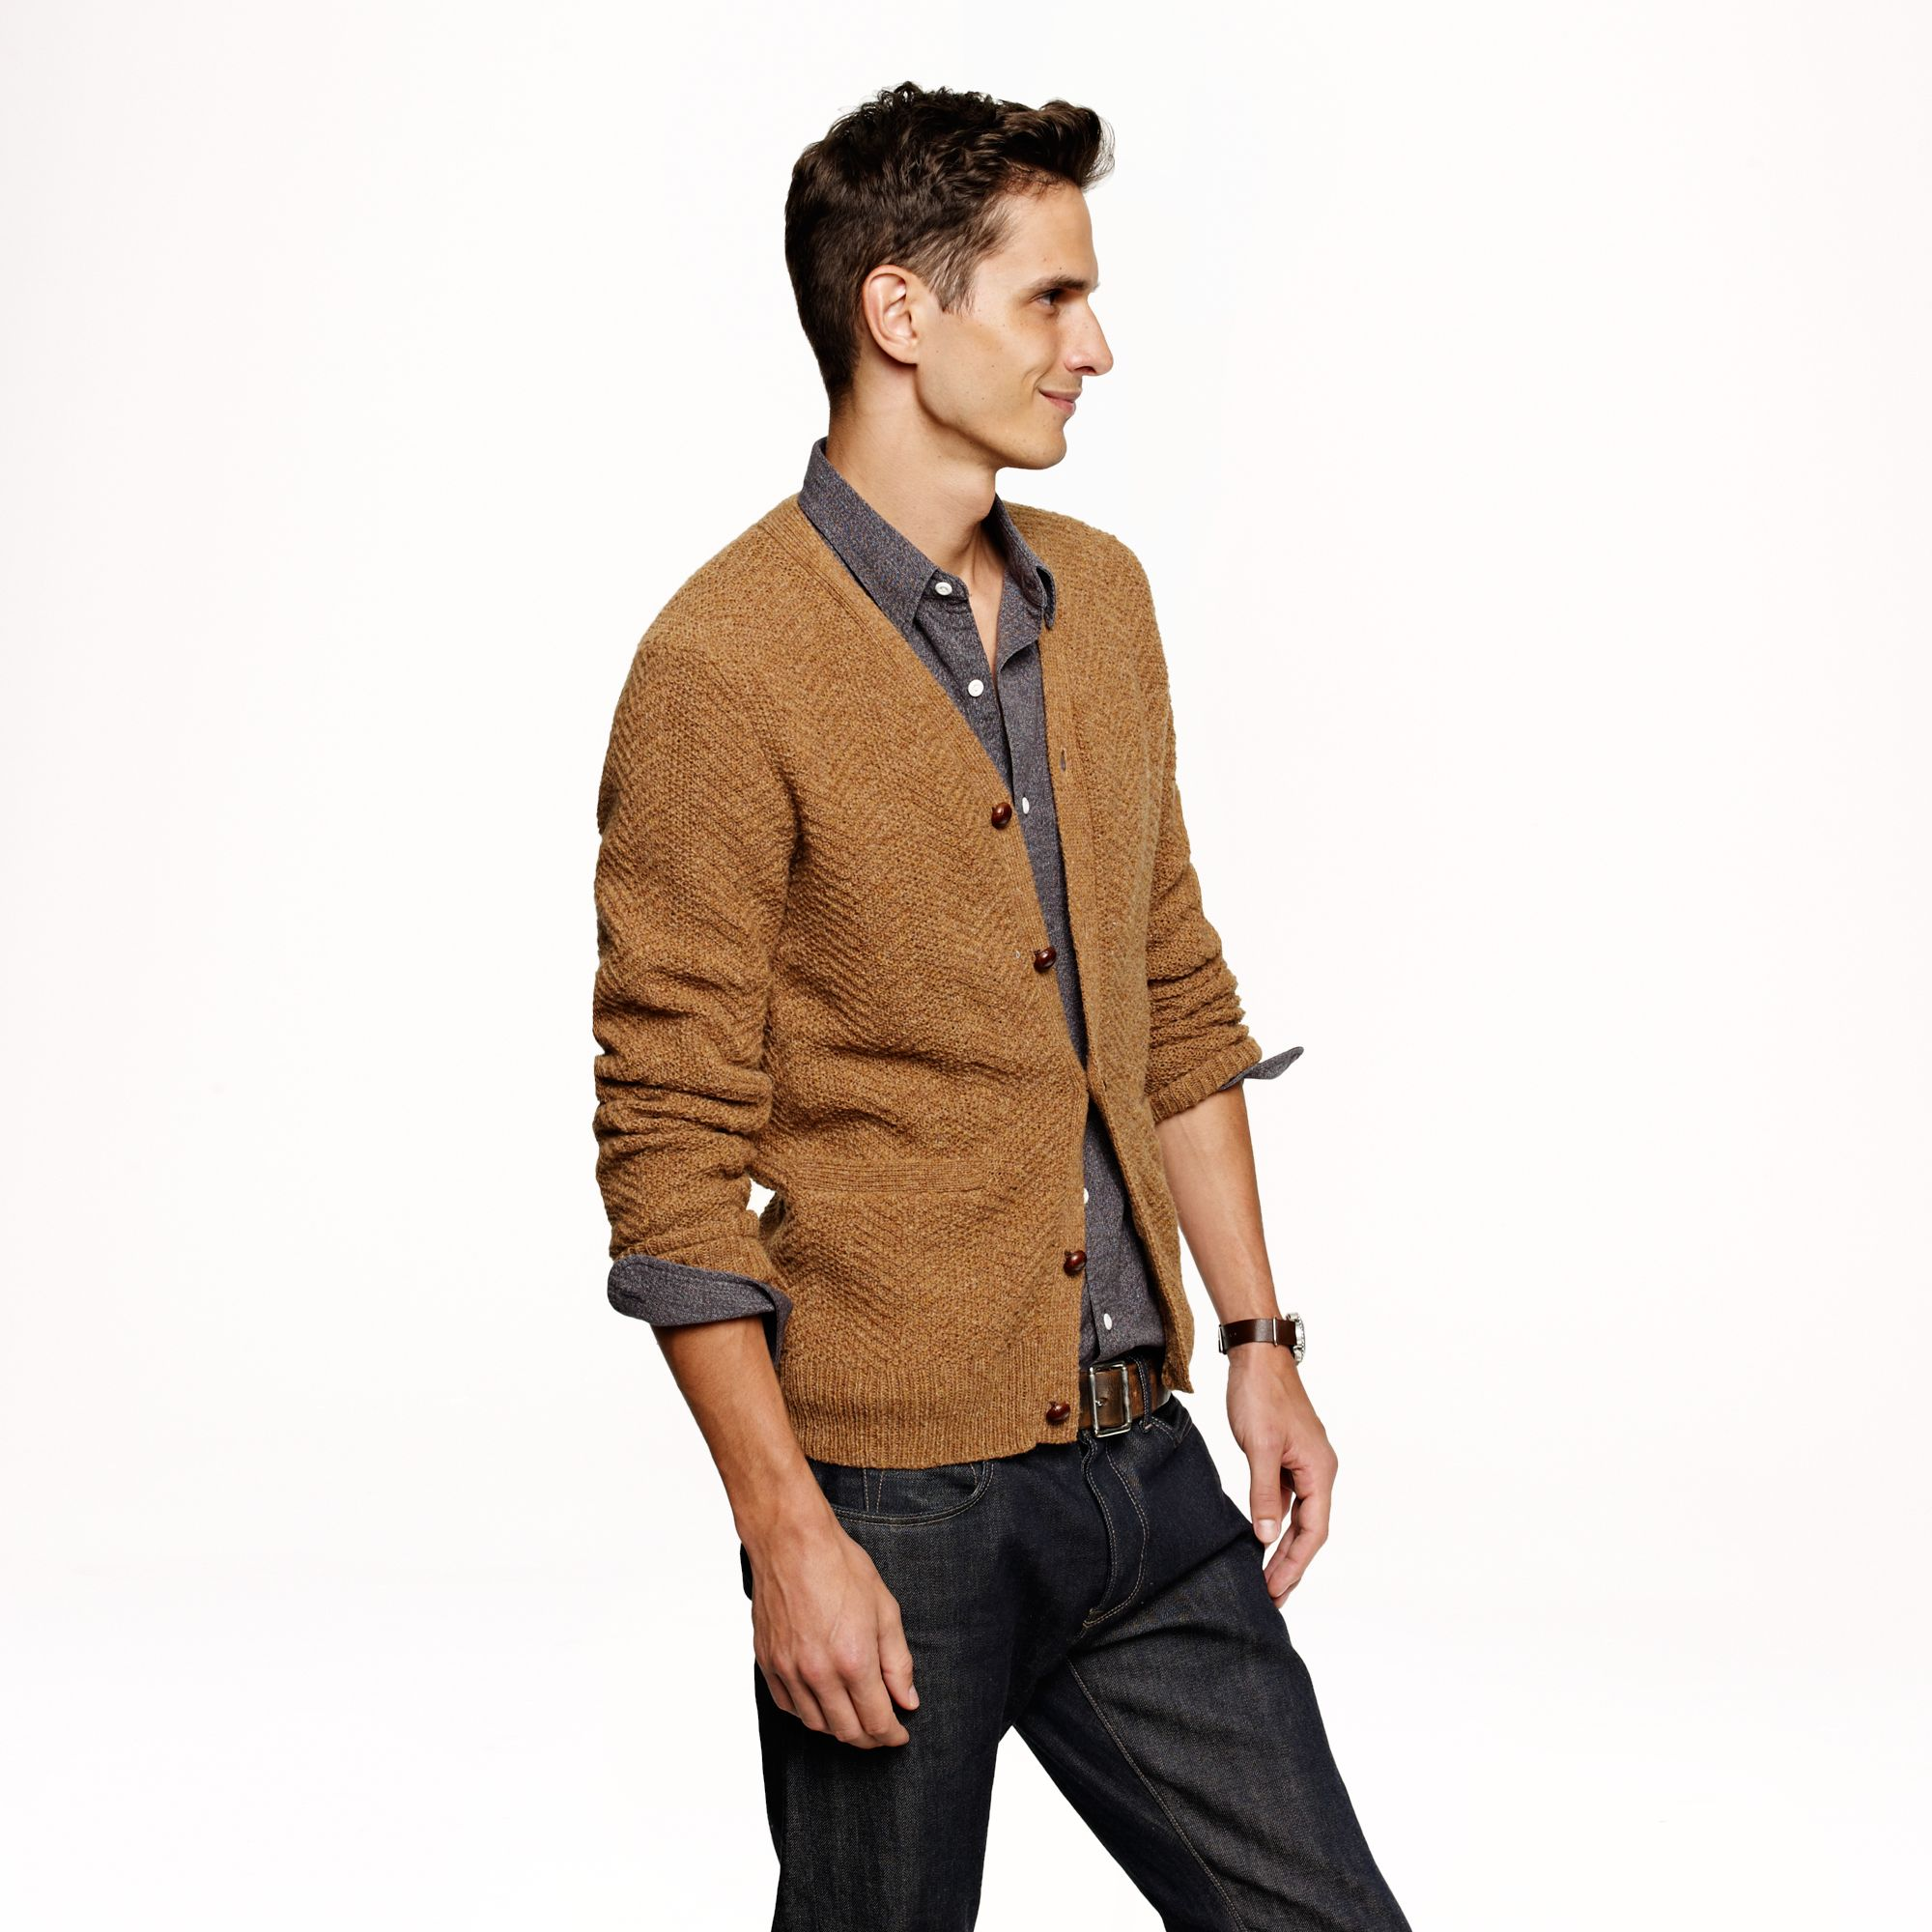 J.crew Wallace Barnes Wool Cableknit Cardigan In Brown For